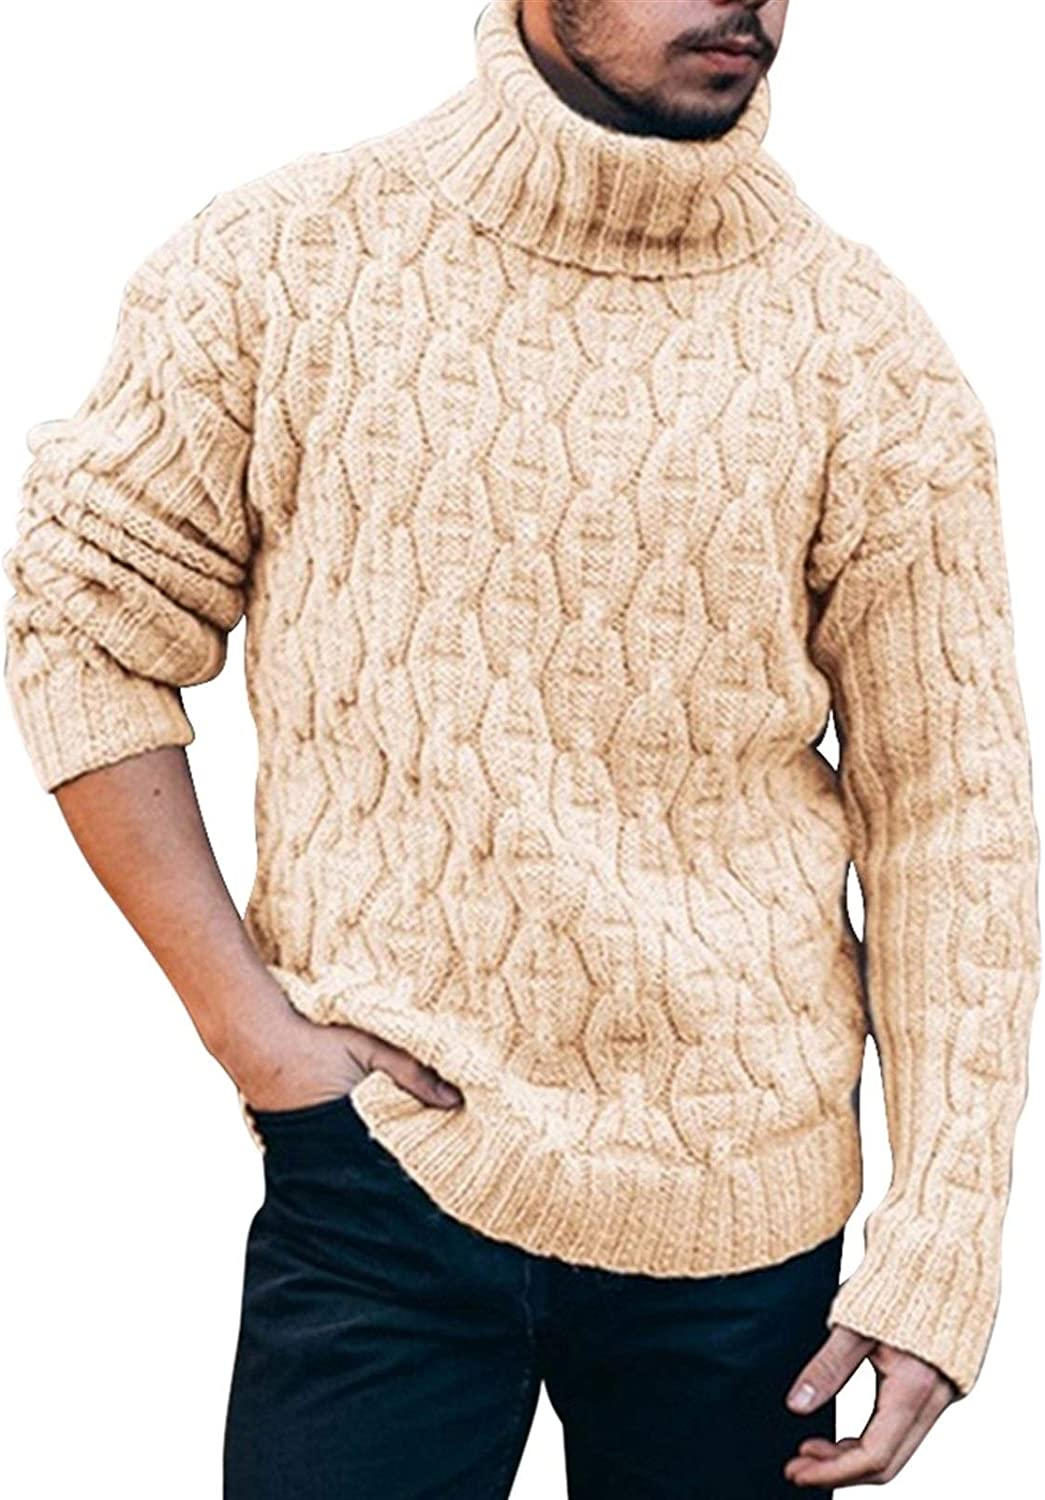 Mens Sweater Now free shipping Turtleneck Low price Thick Warm Neck Pullover C High Sweaters